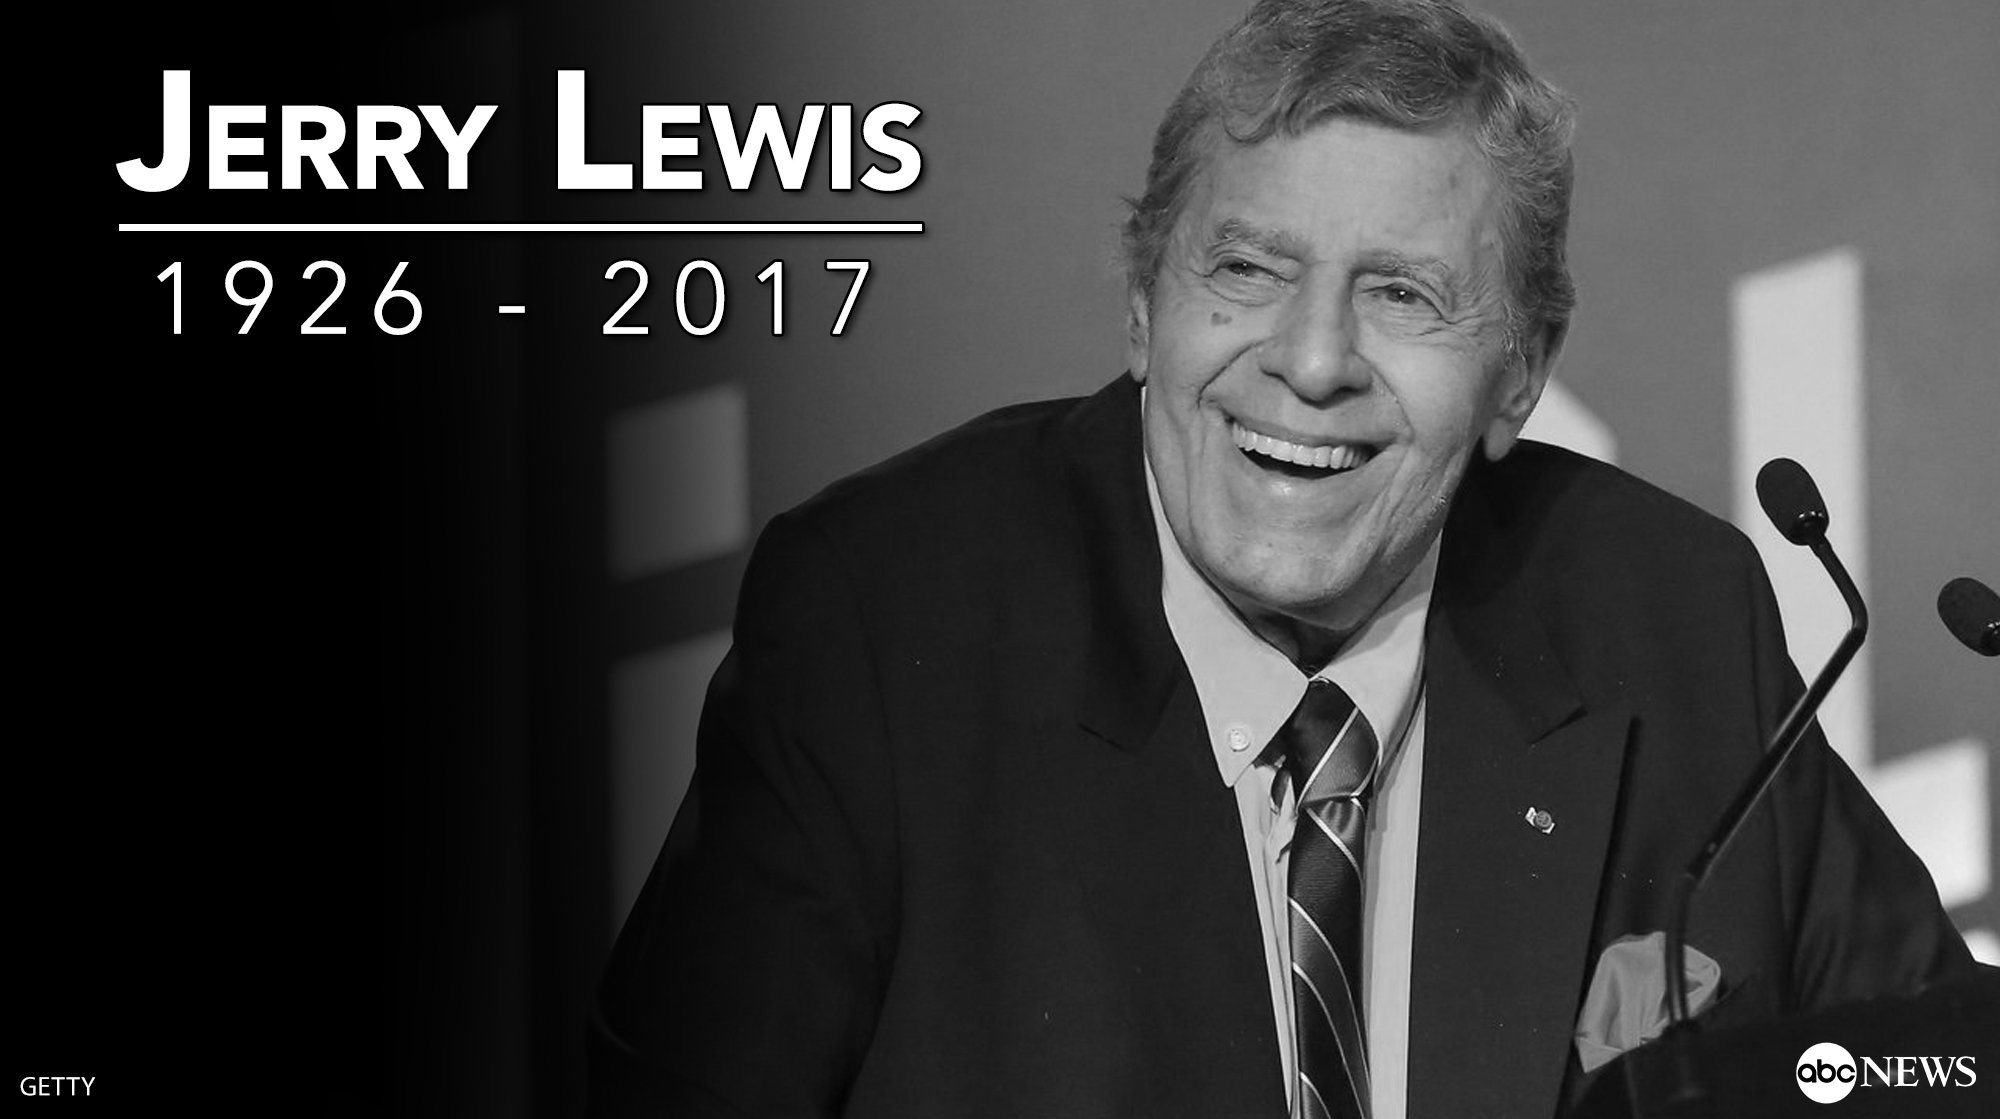 Rest in peace, Jerry Lewis... https://t.co/OeASBlUINi